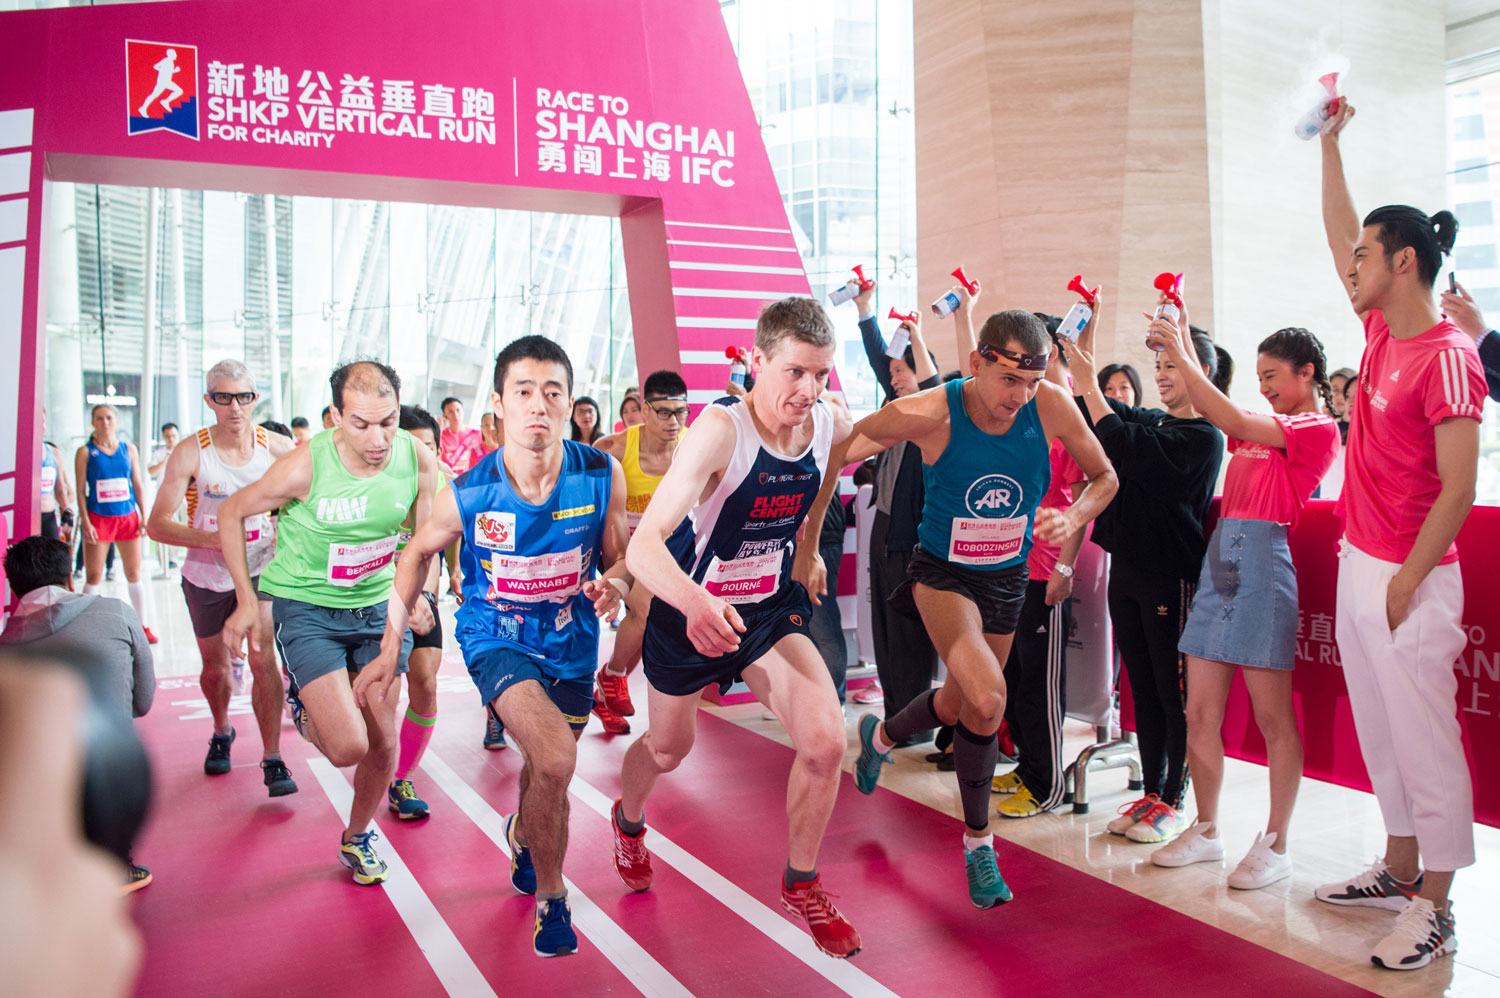 Men's start, SHKP Vertical Run for Charity: Race to Shanghai IFC. ©Sporting Republic